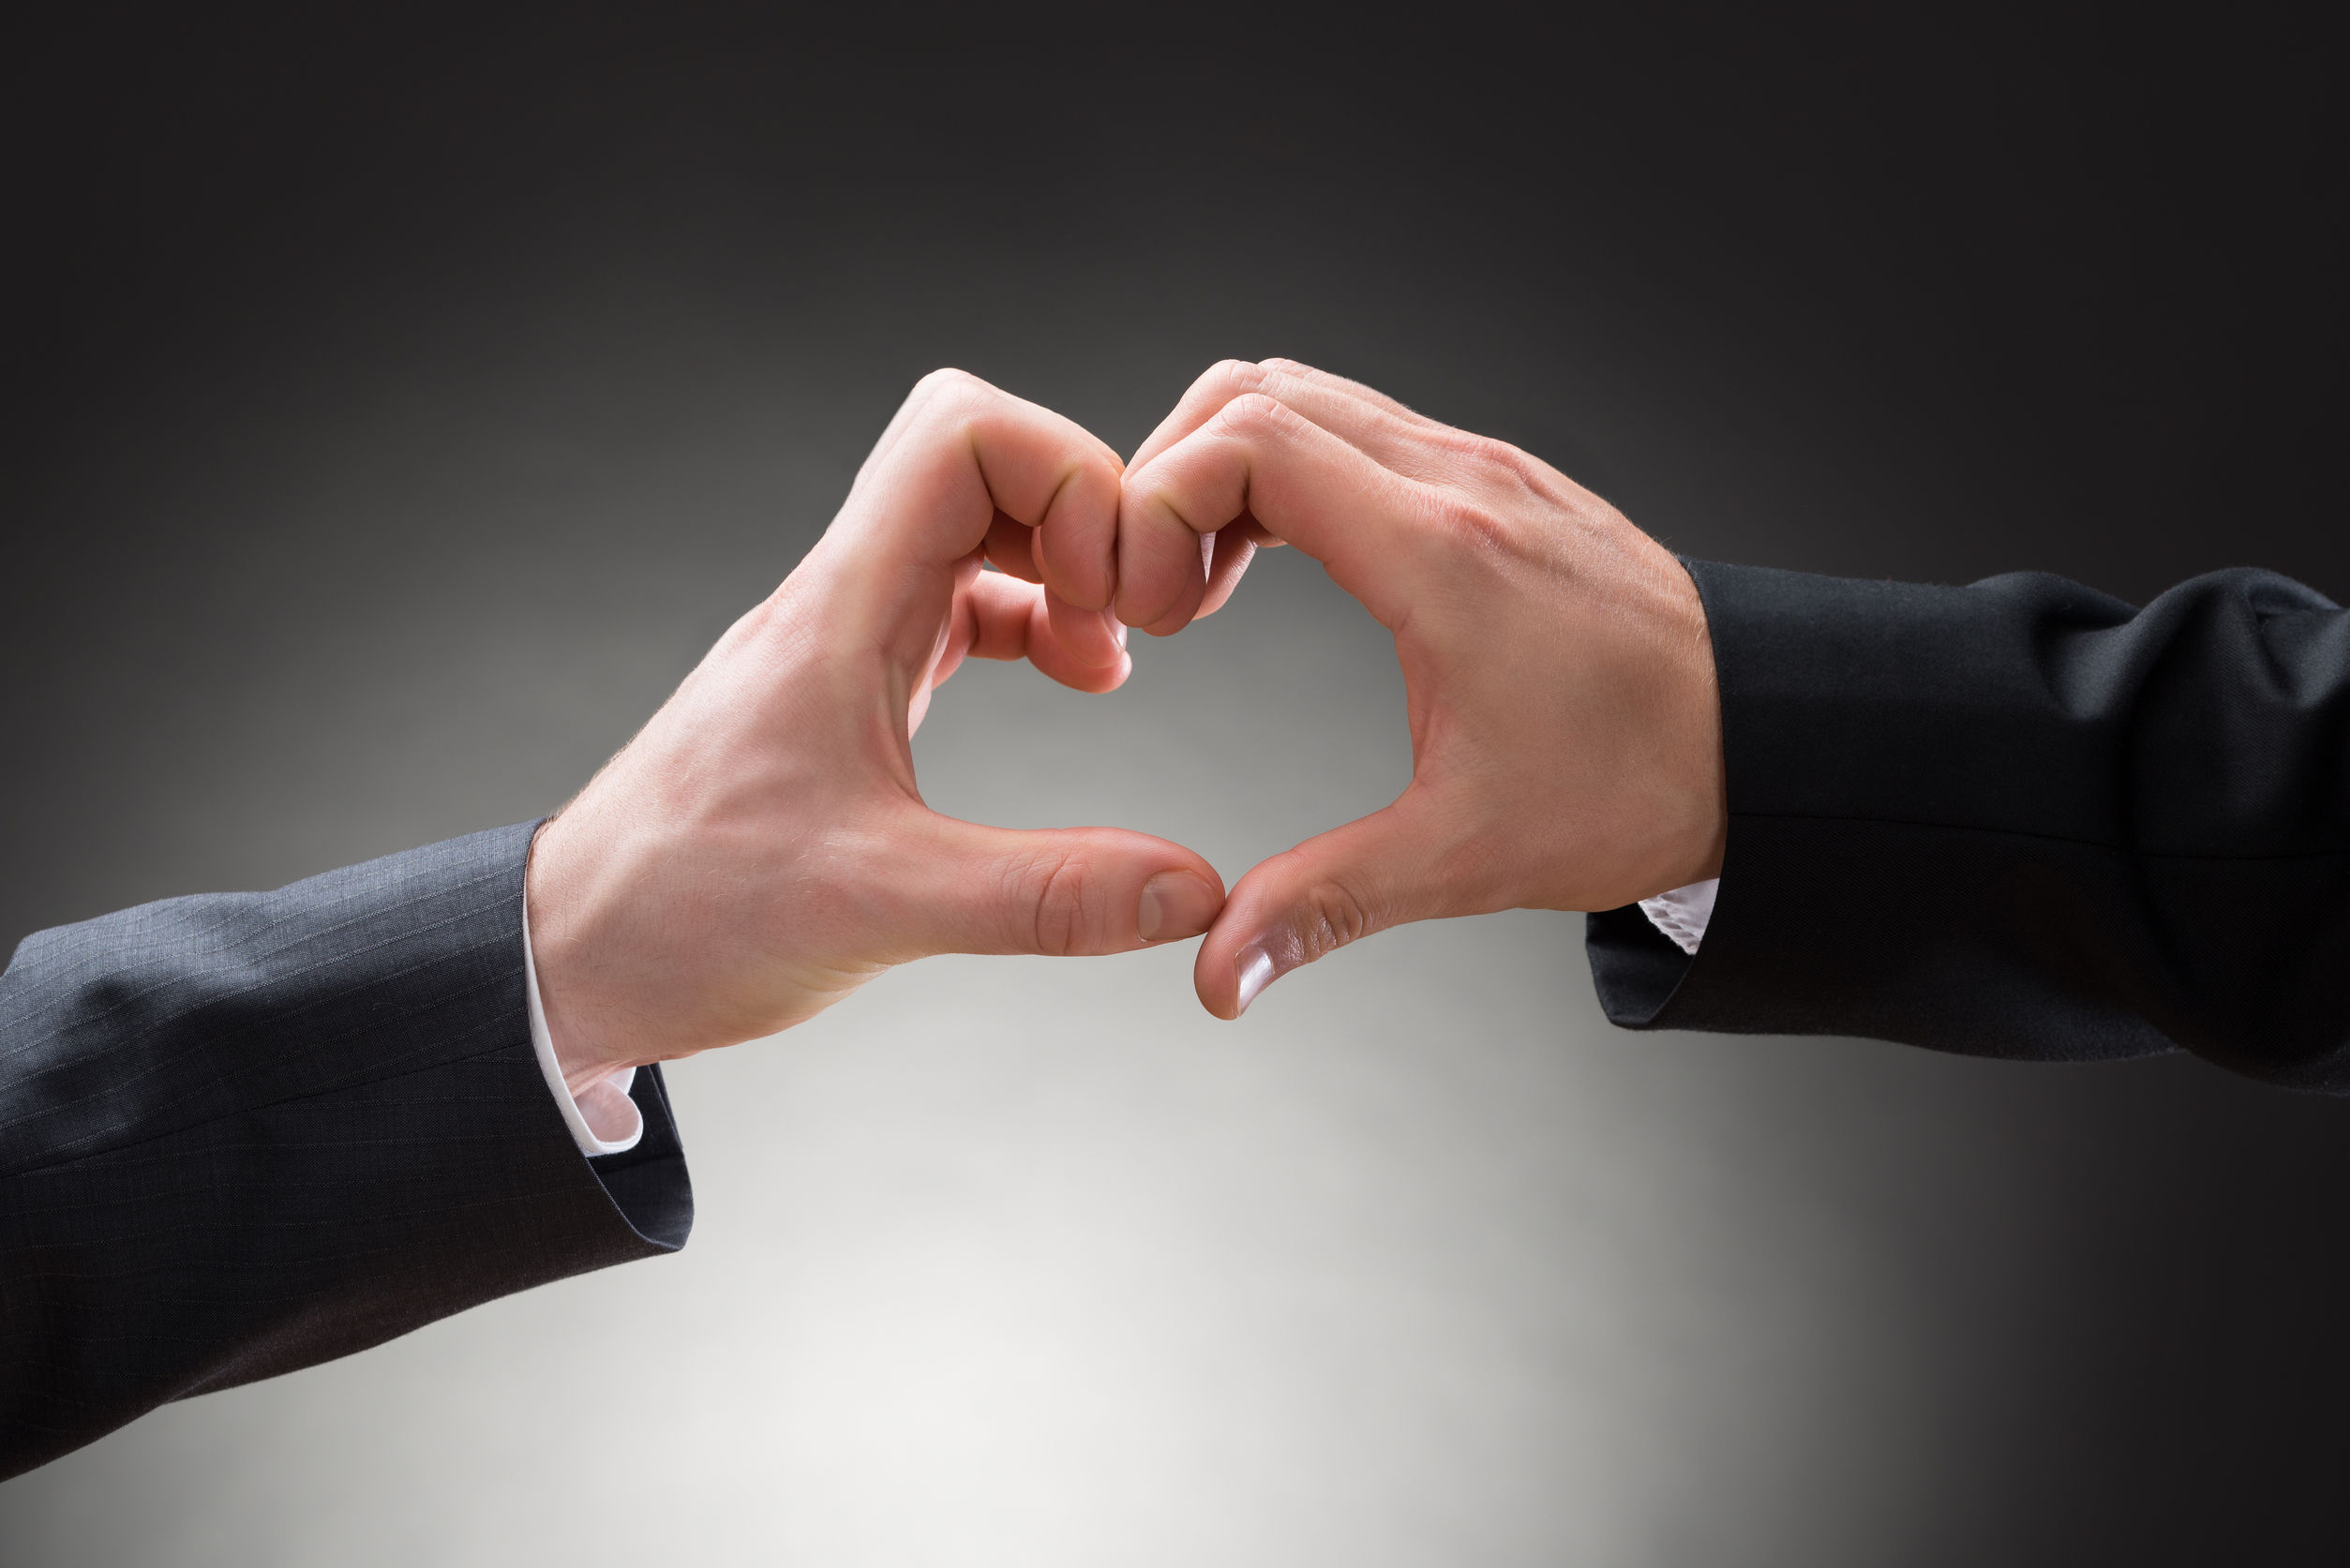 close-up of two gay men making heartshape with hands